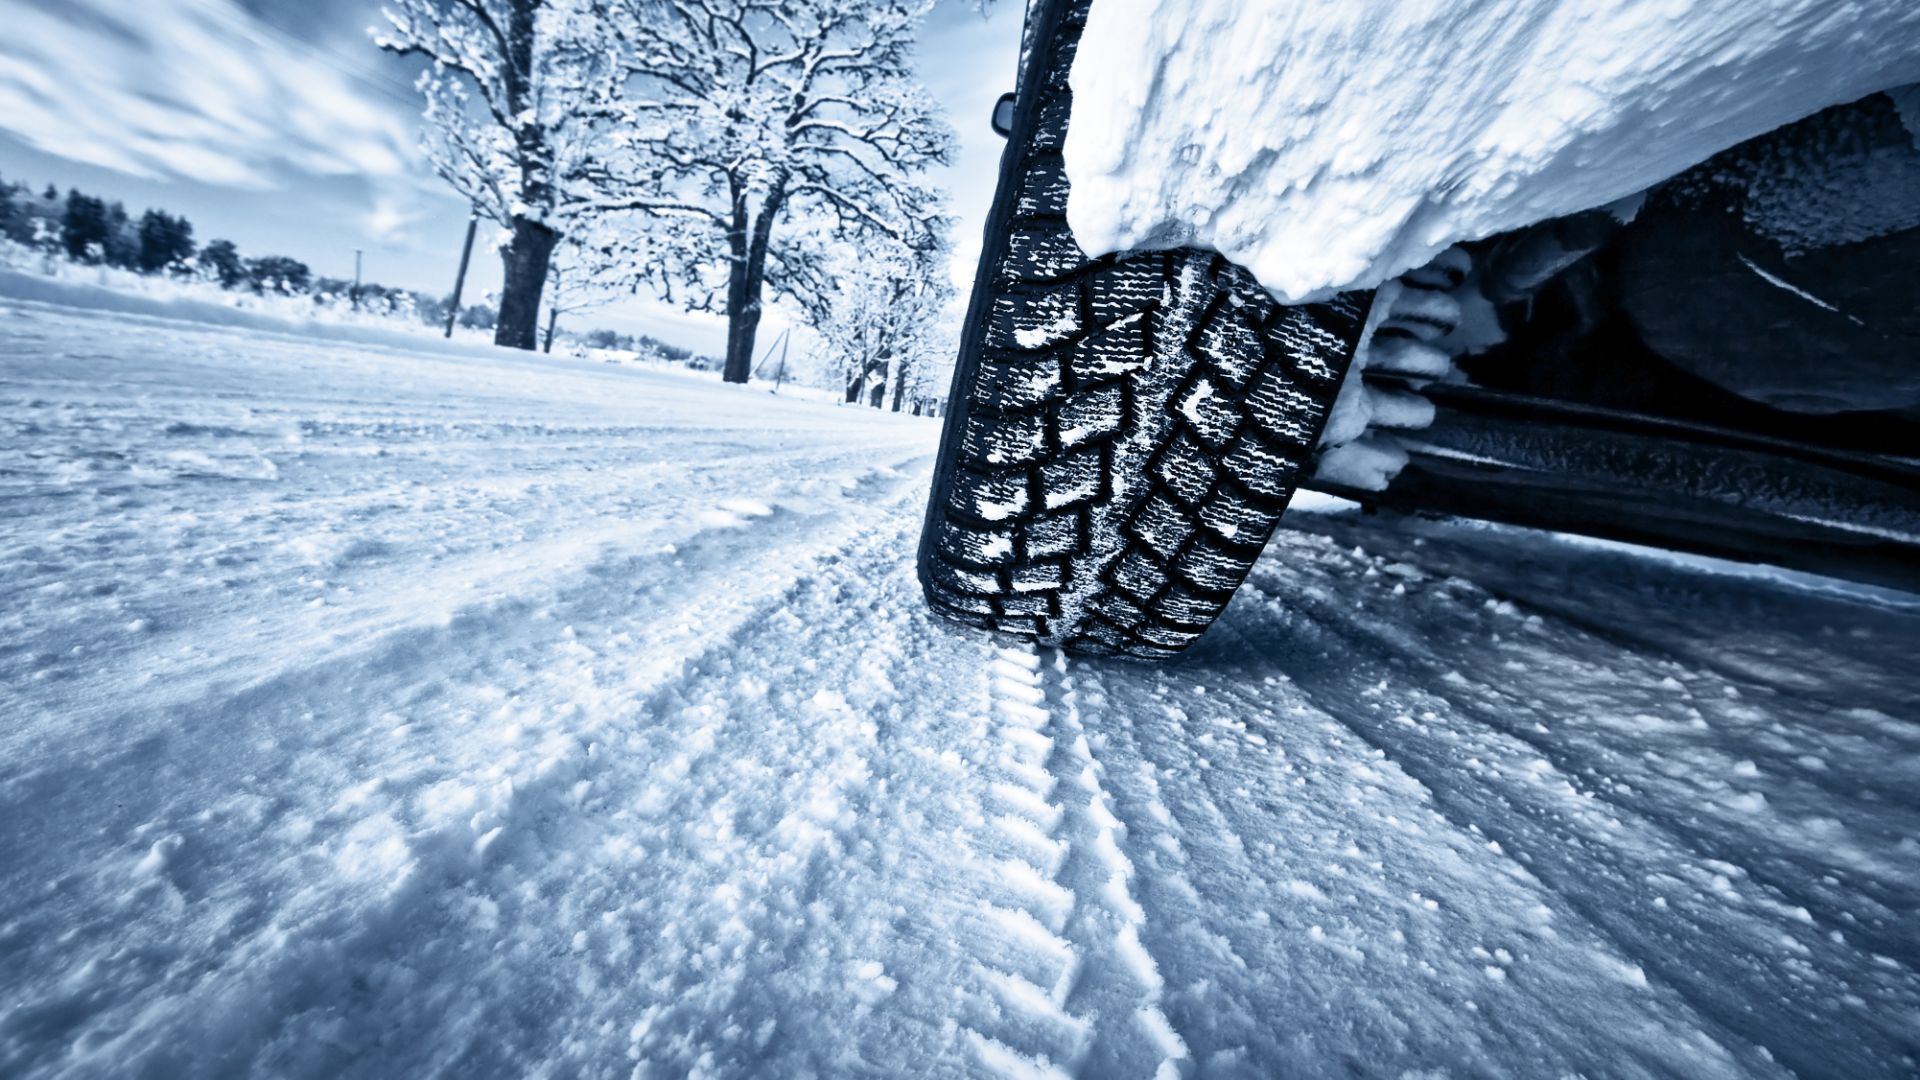 Winter driving tips advice